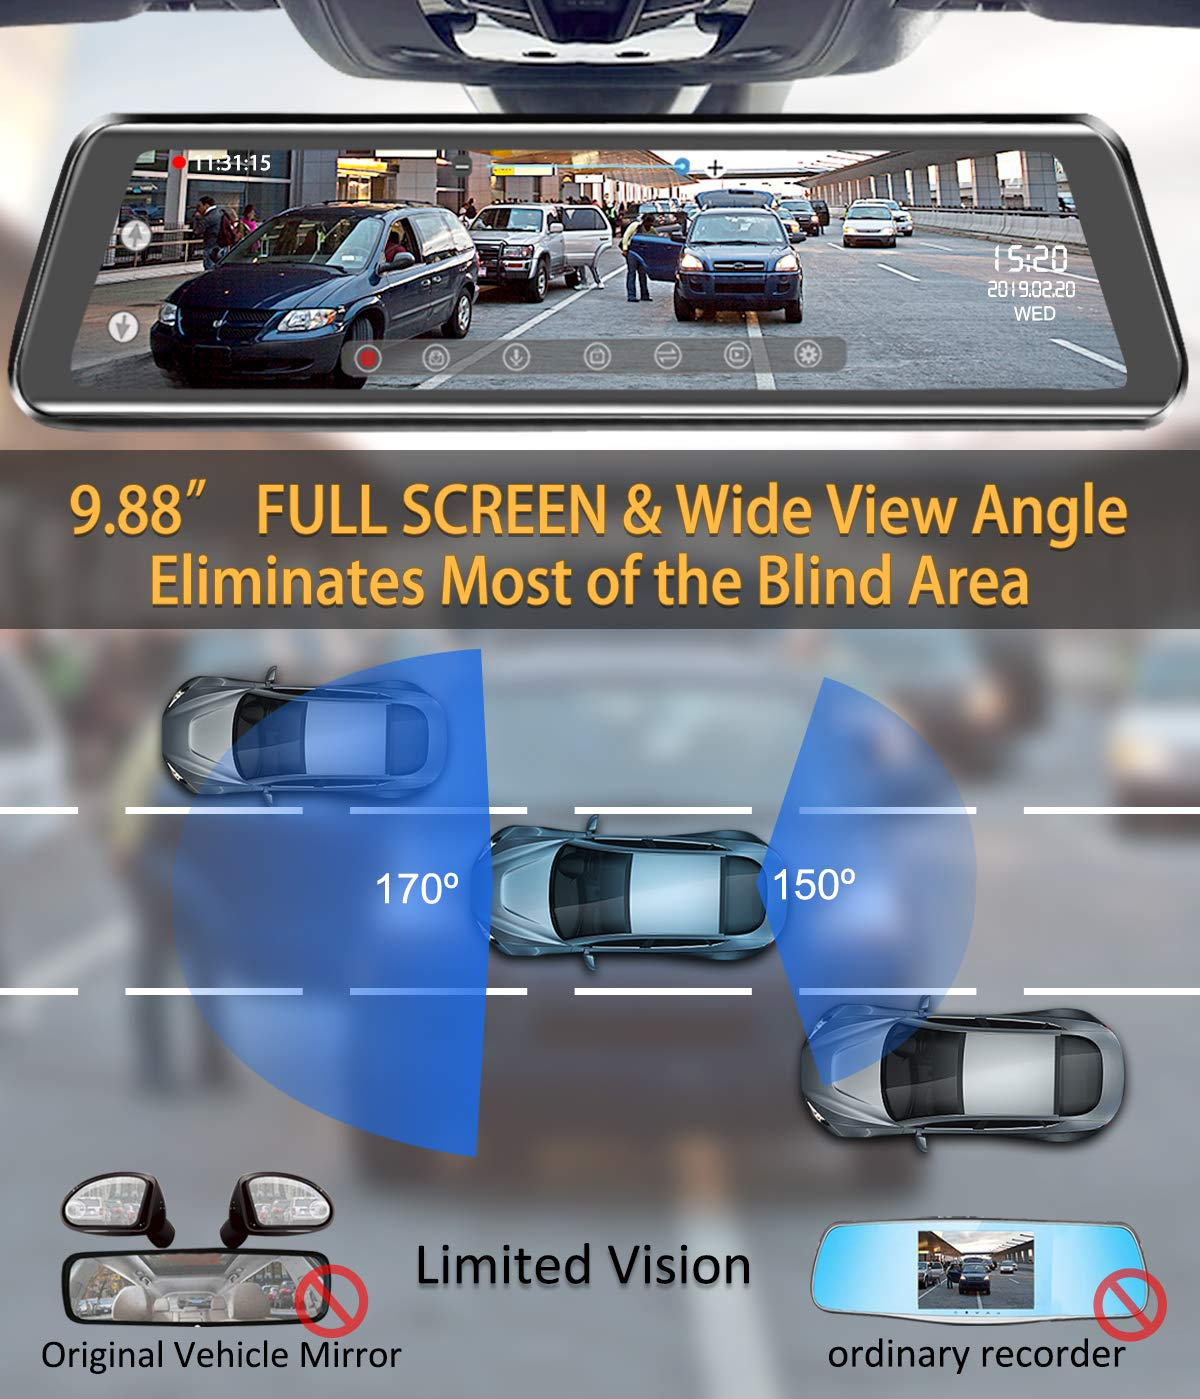 Mirror Dash Cam 9.88 inch Full Touch Screen Car Backup Camera Dual Recording HD Front 1080P 170° Wide Angle 1080P Rear View Camera 150° URVOLAX Night Vision,24-Hour Parking,GPS, SD Card by URVOLAX (Image #8)